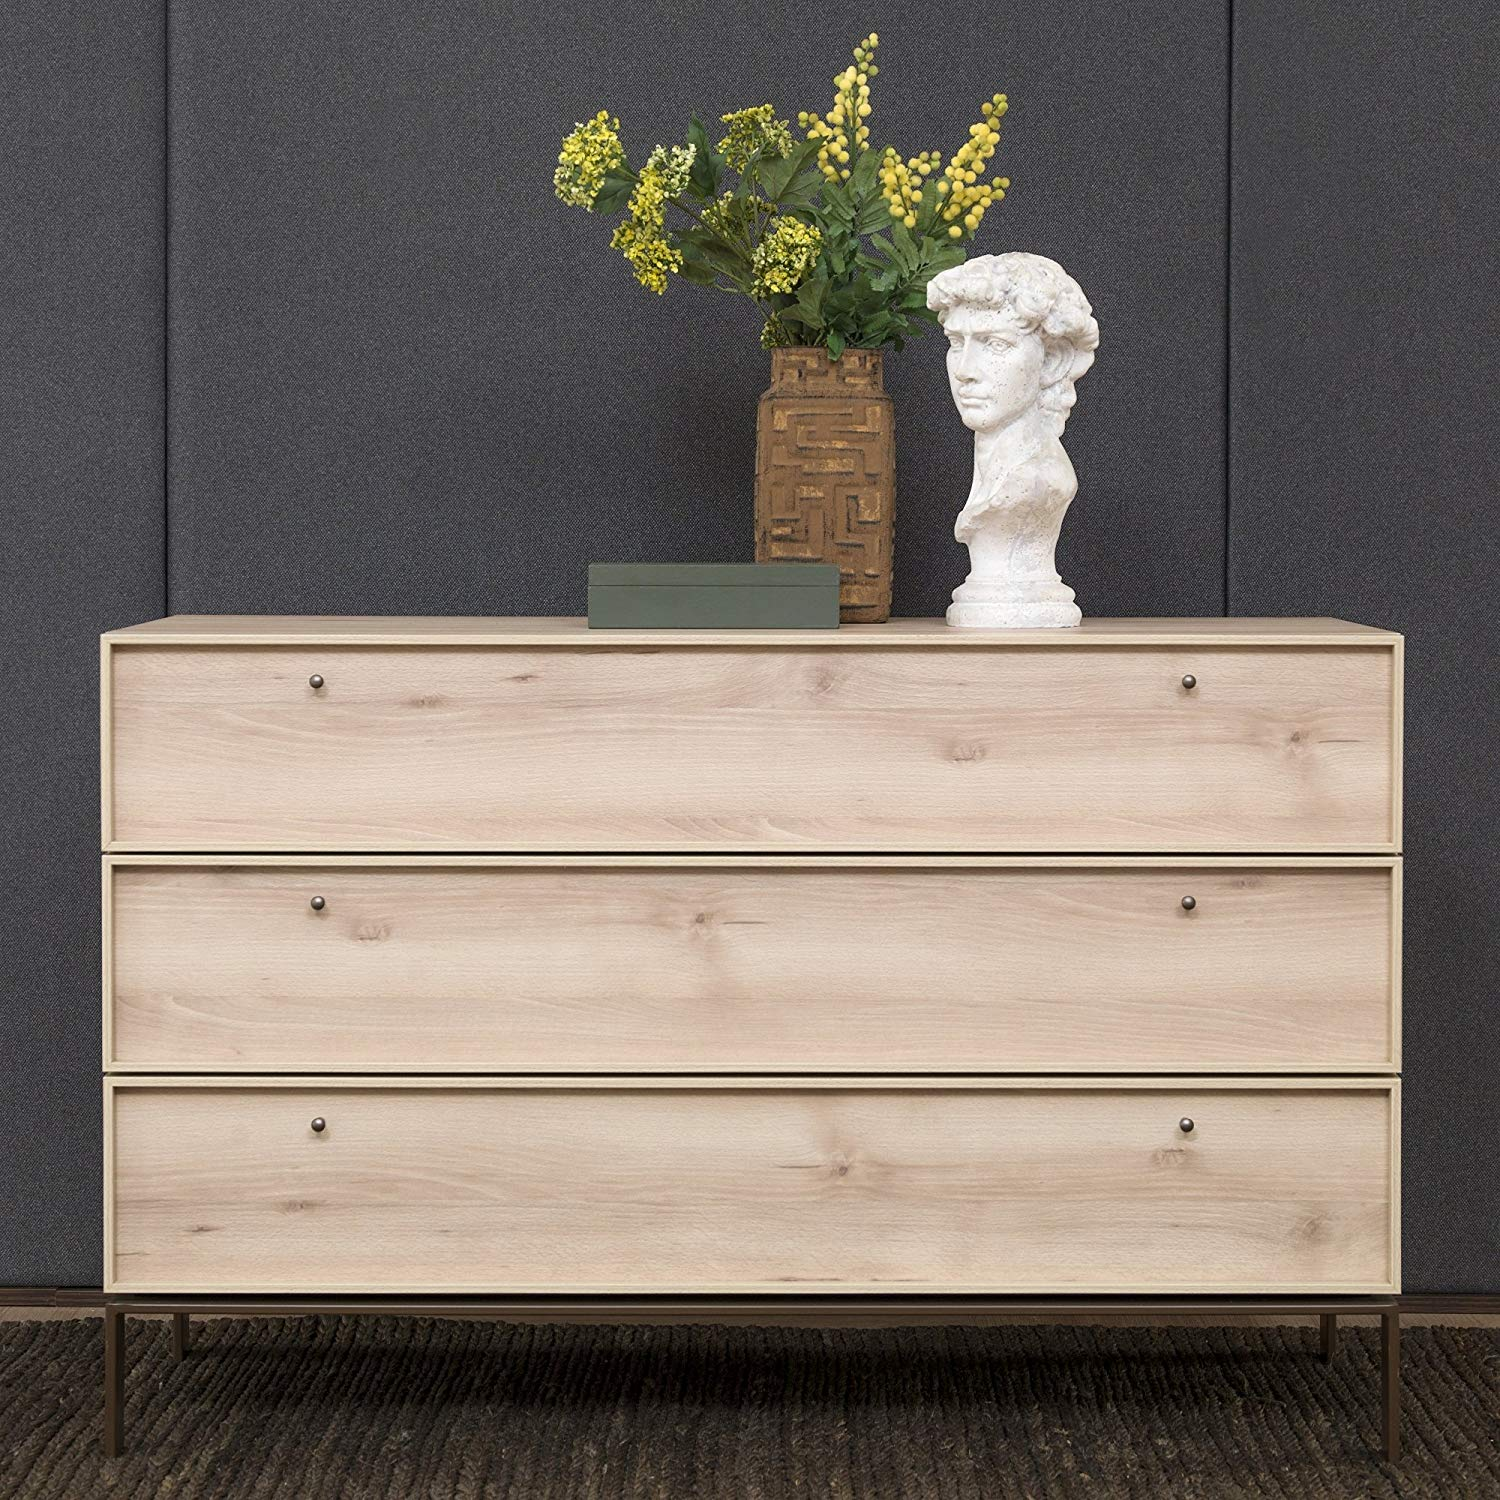 Adam and Illy VAL0686 Valentin Chest of Drawers, Iconic Oak